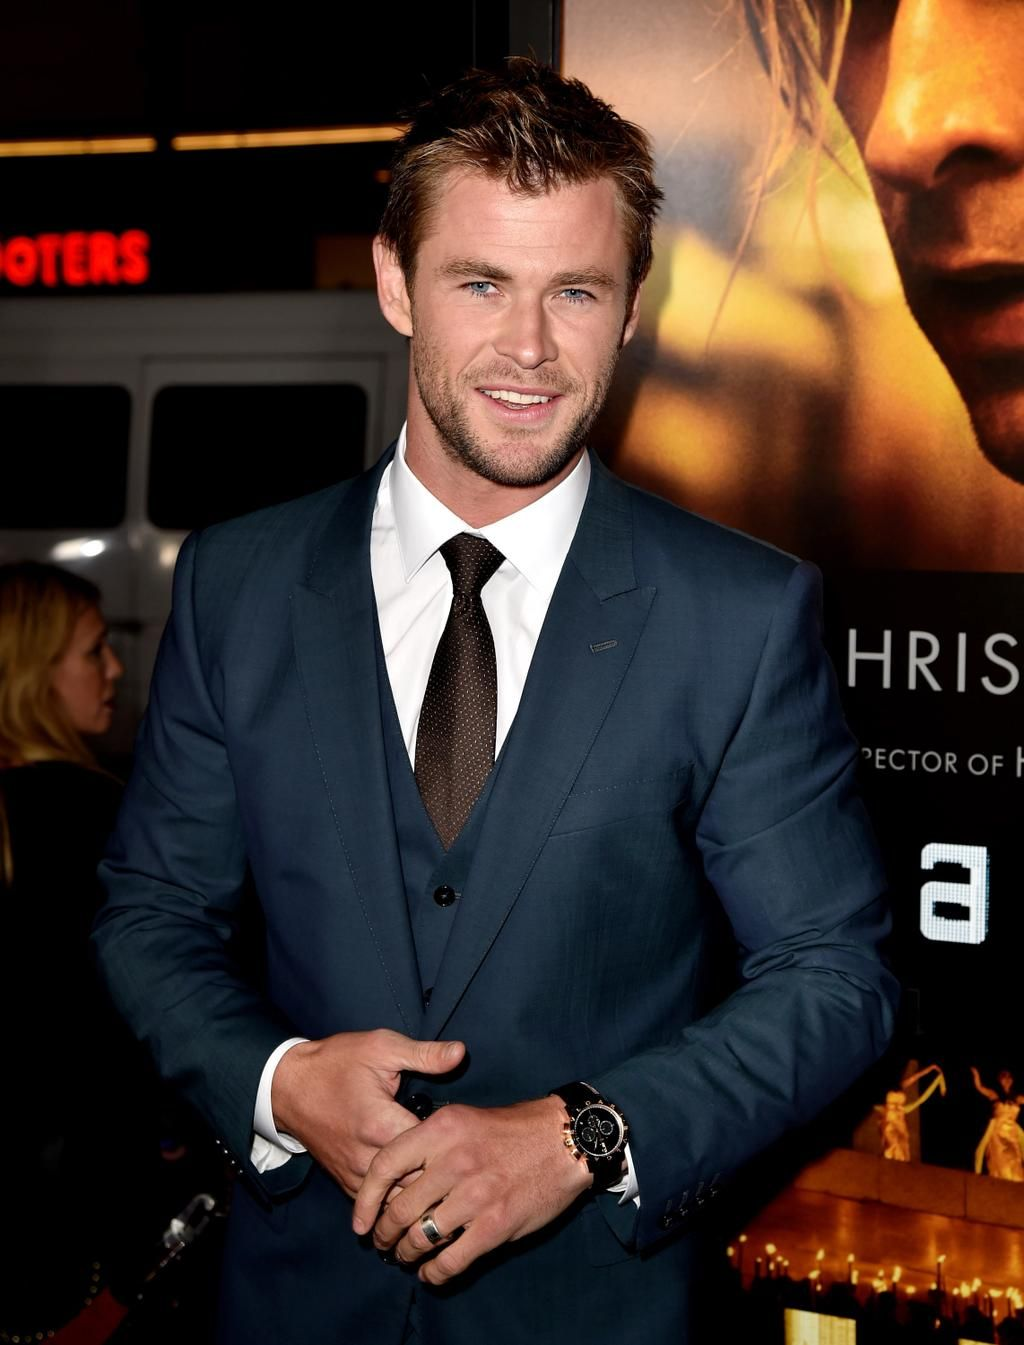 Let's celebrate #ChrisHemsworth joining Twitter w/ some ridiculously hot pics, yes? http://ahwd.tv/KXl3Ek #Access